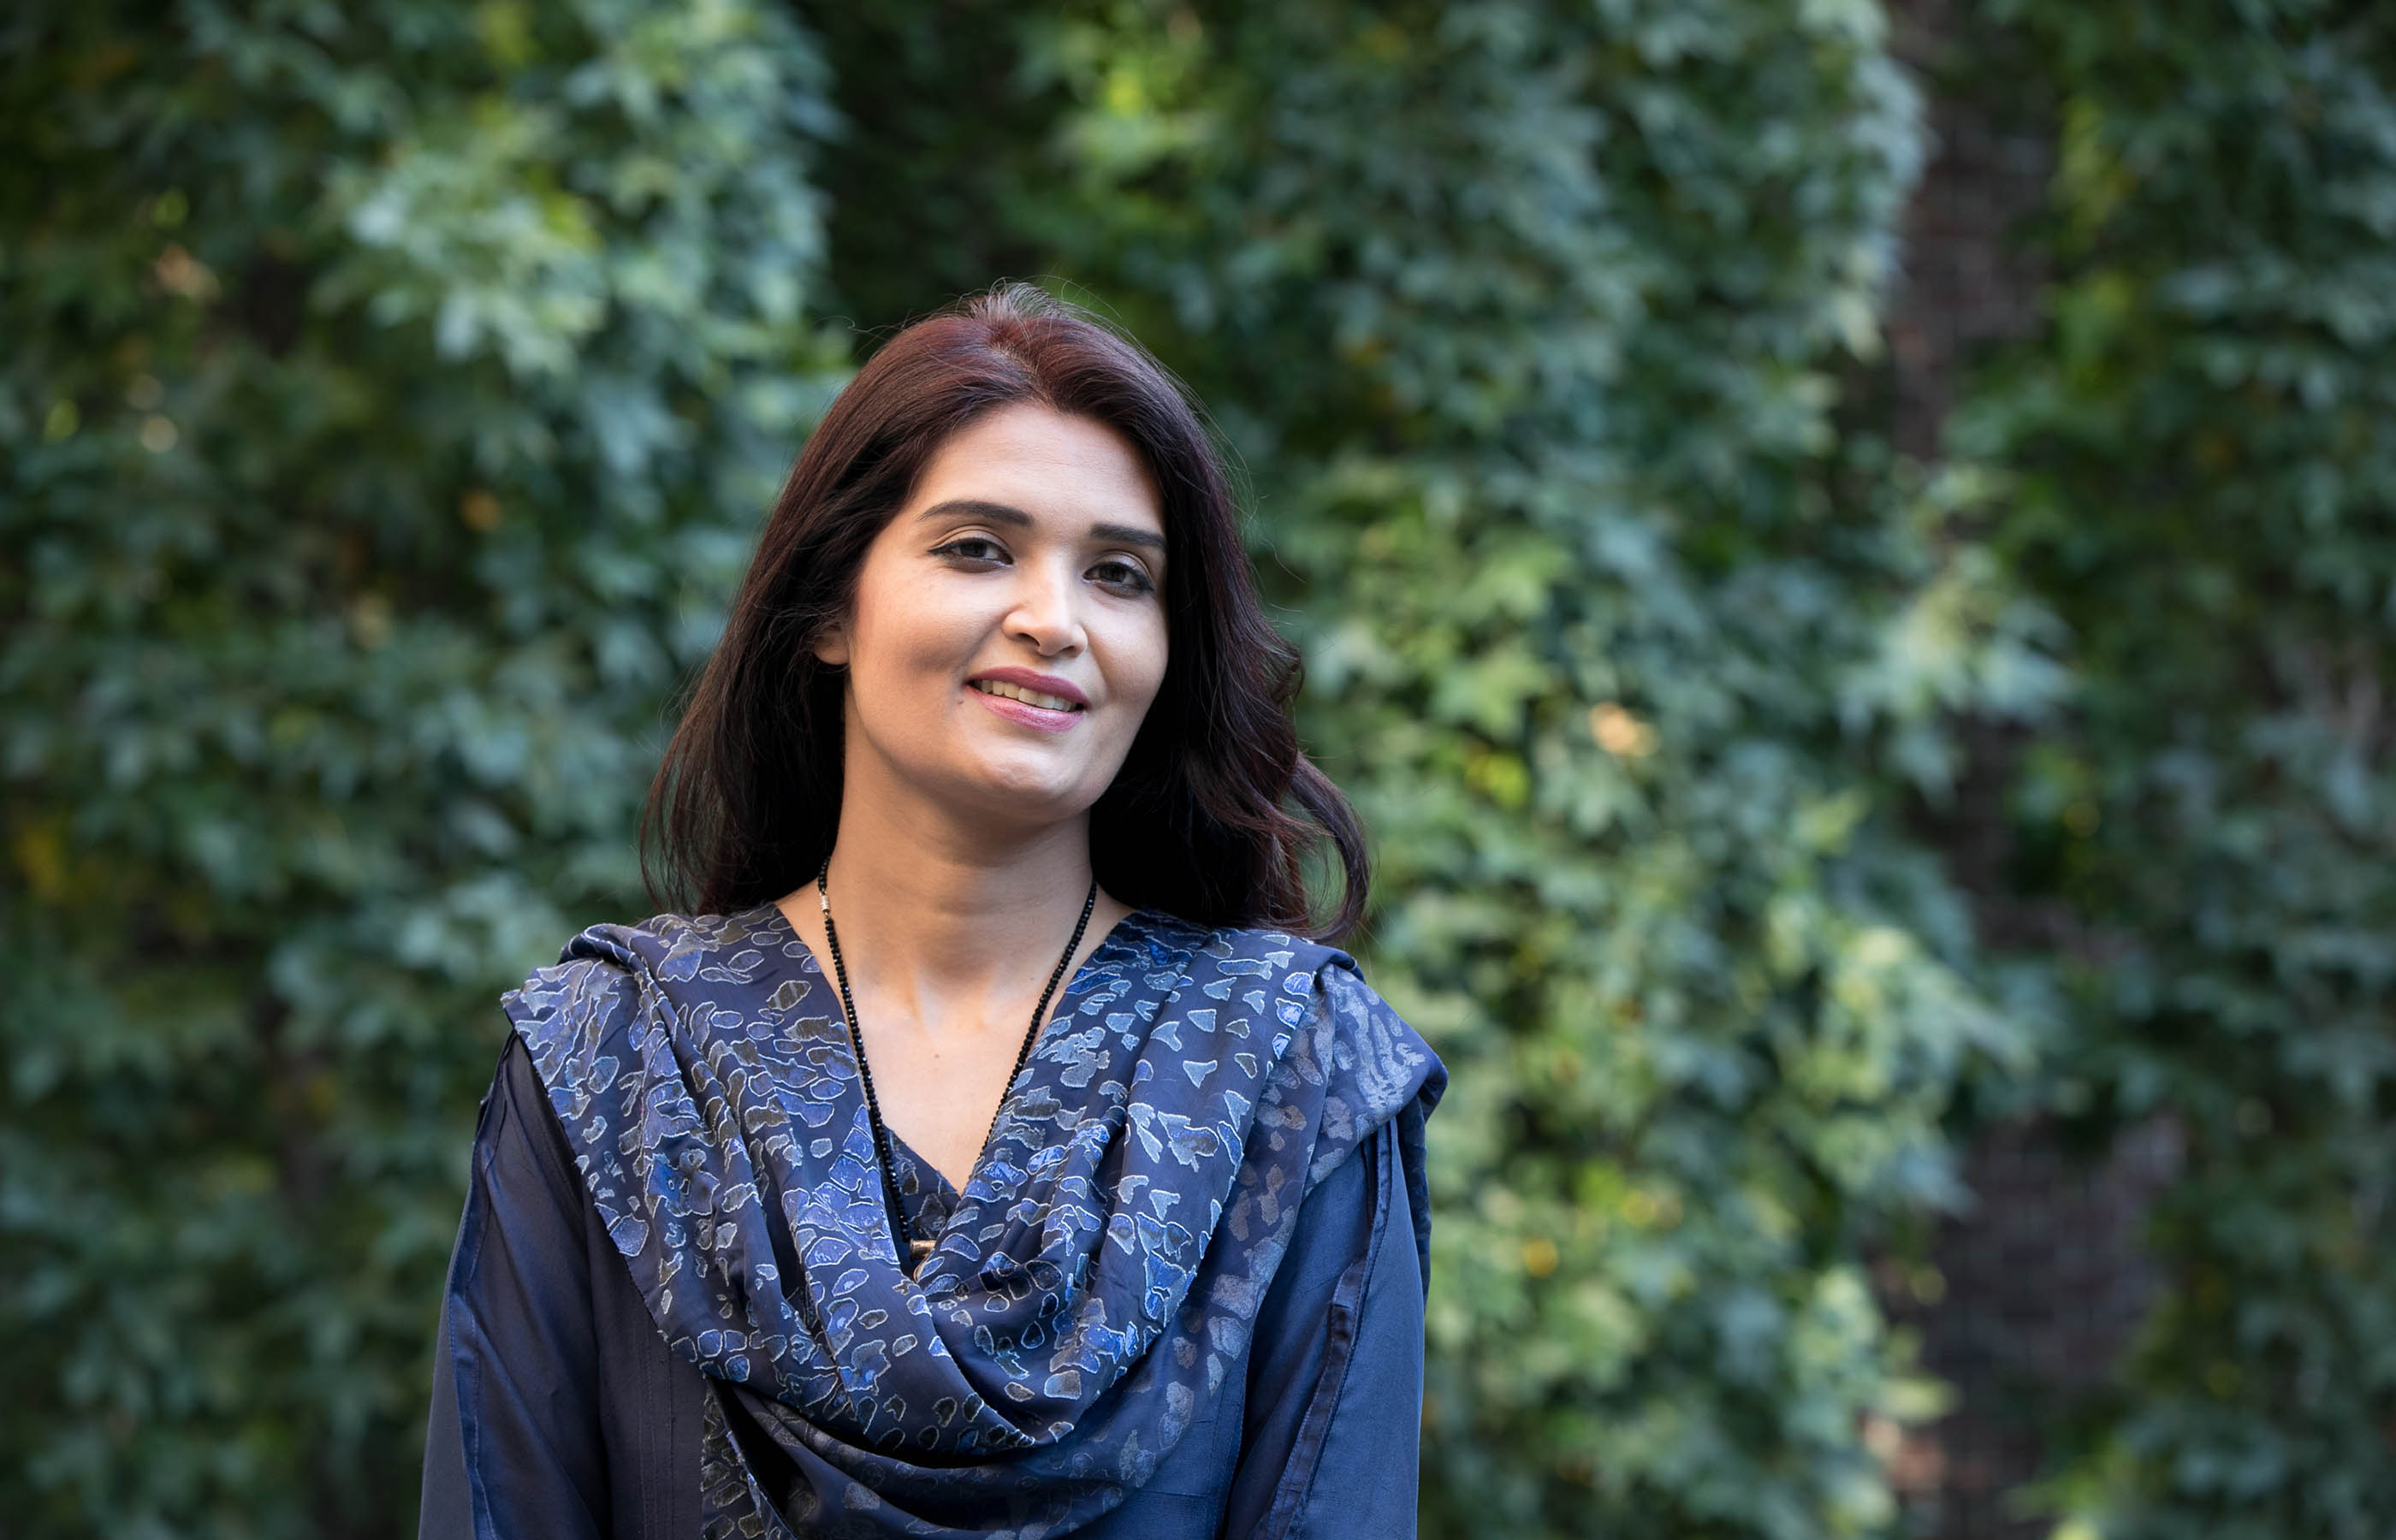 Ujala Nayyar is a surveillance officer for the World Health Organization in Pakistan's Punjab province